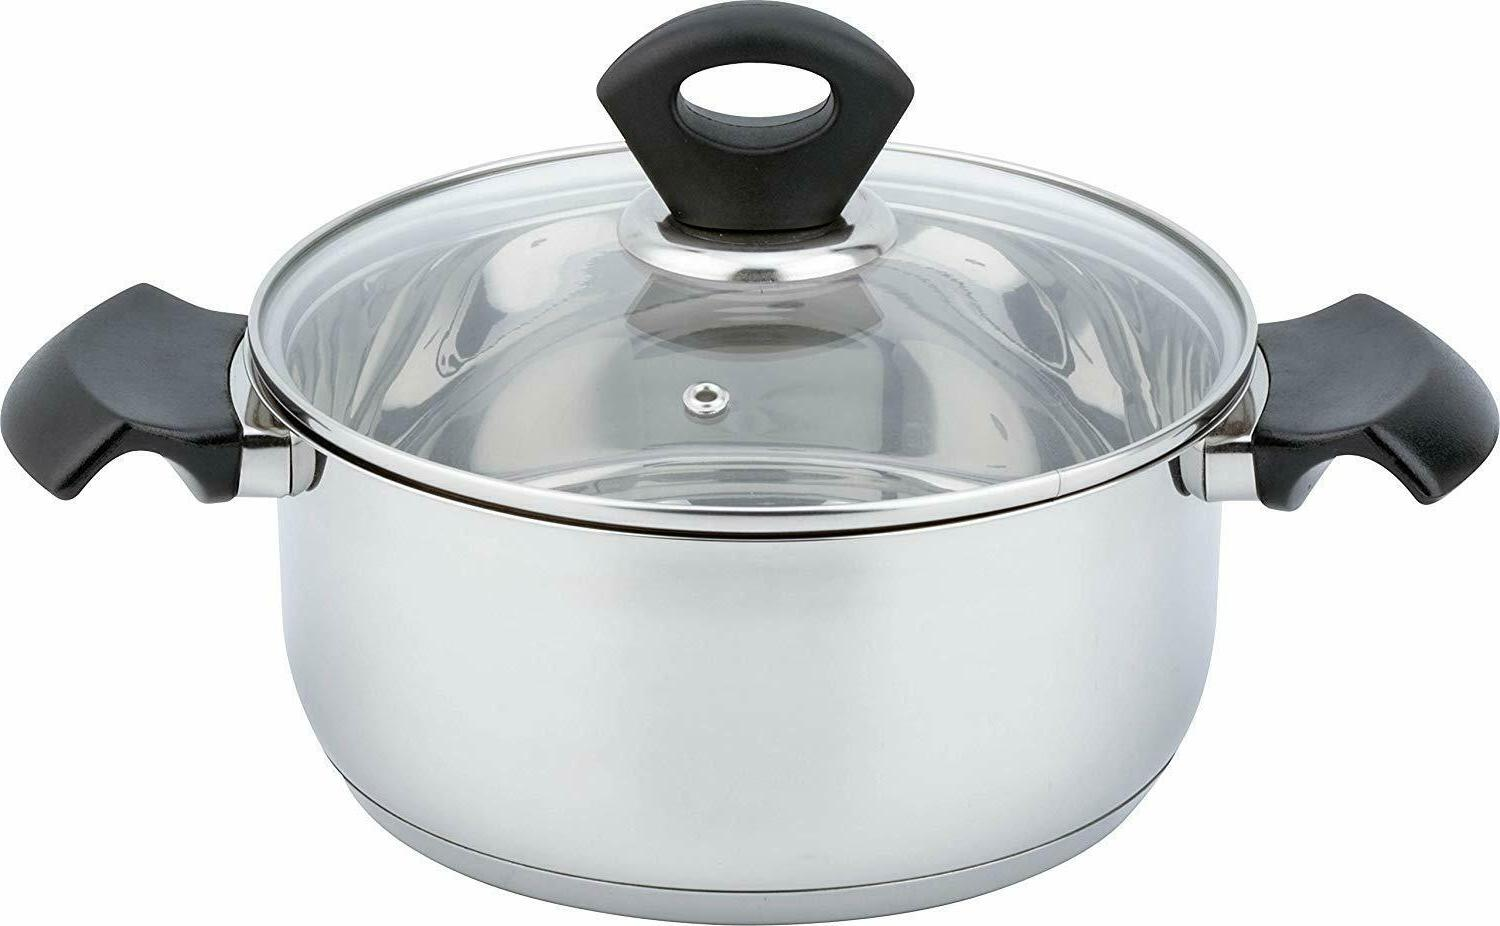 mirror polish stainless steel kitchen induction cookware